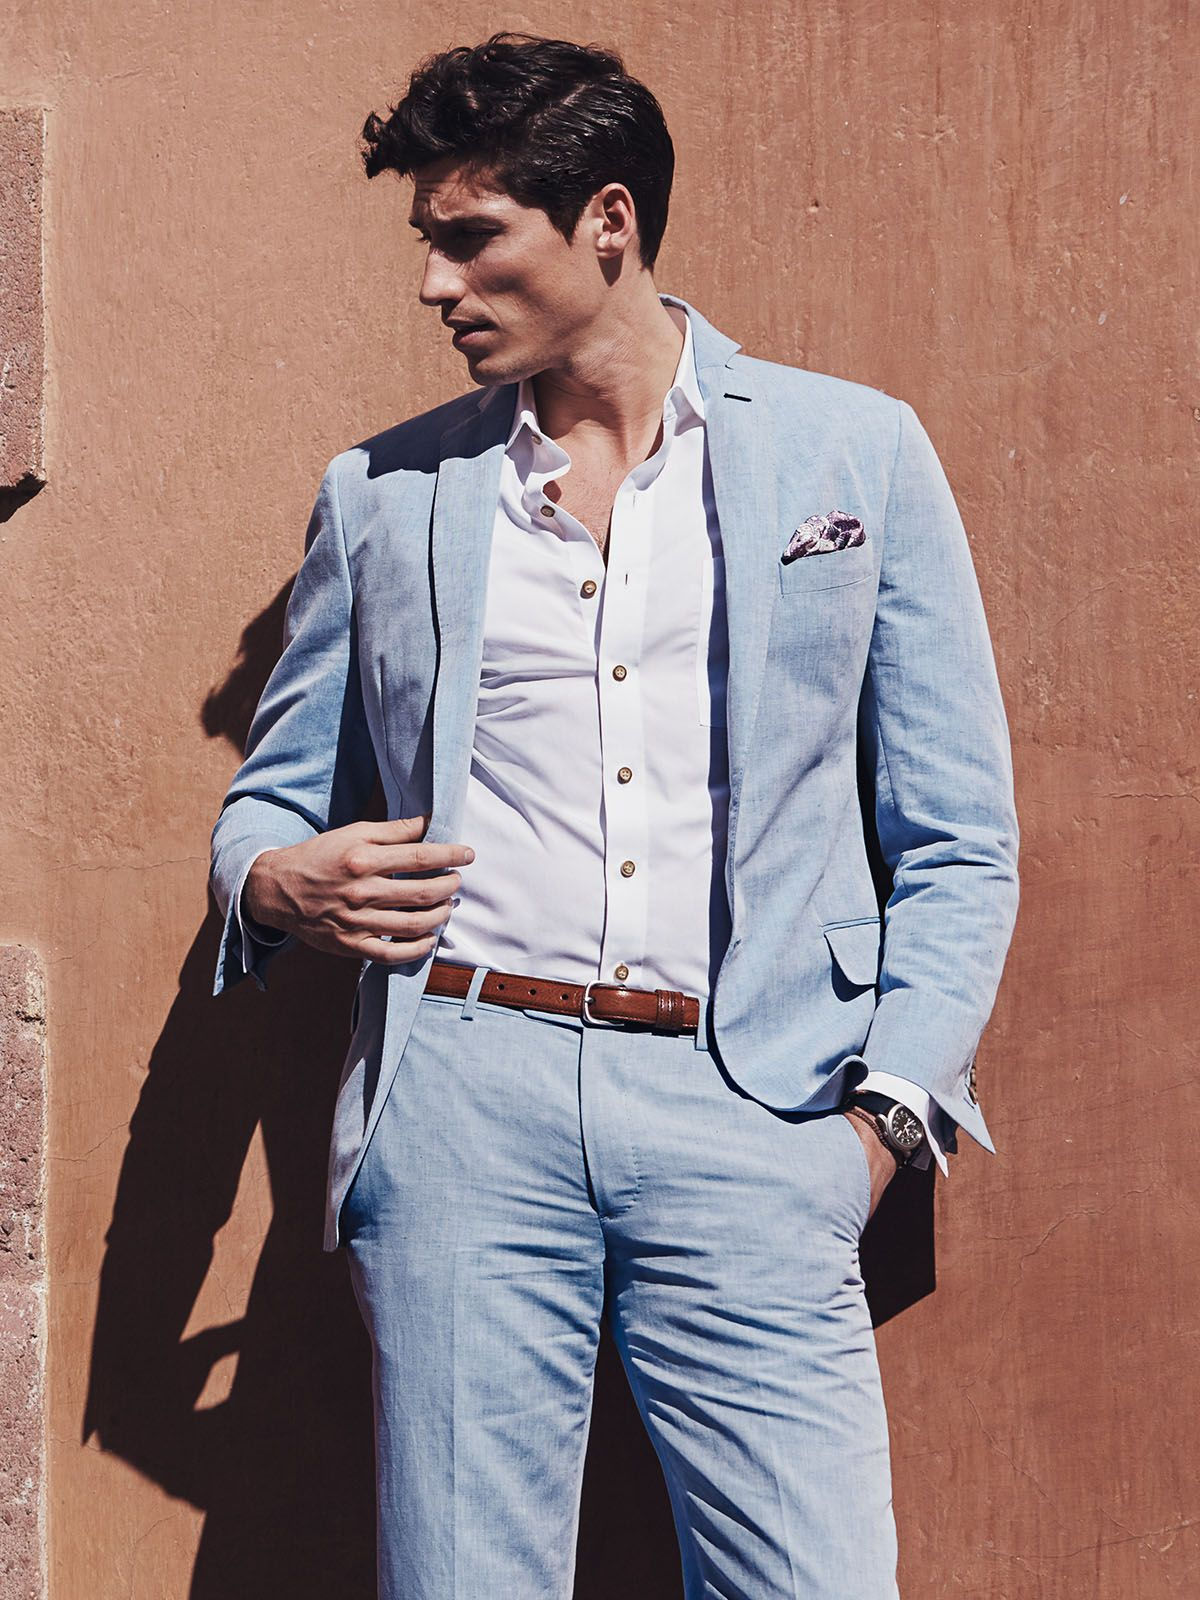 Blue chambray linen suit great for weddings and hot summer days